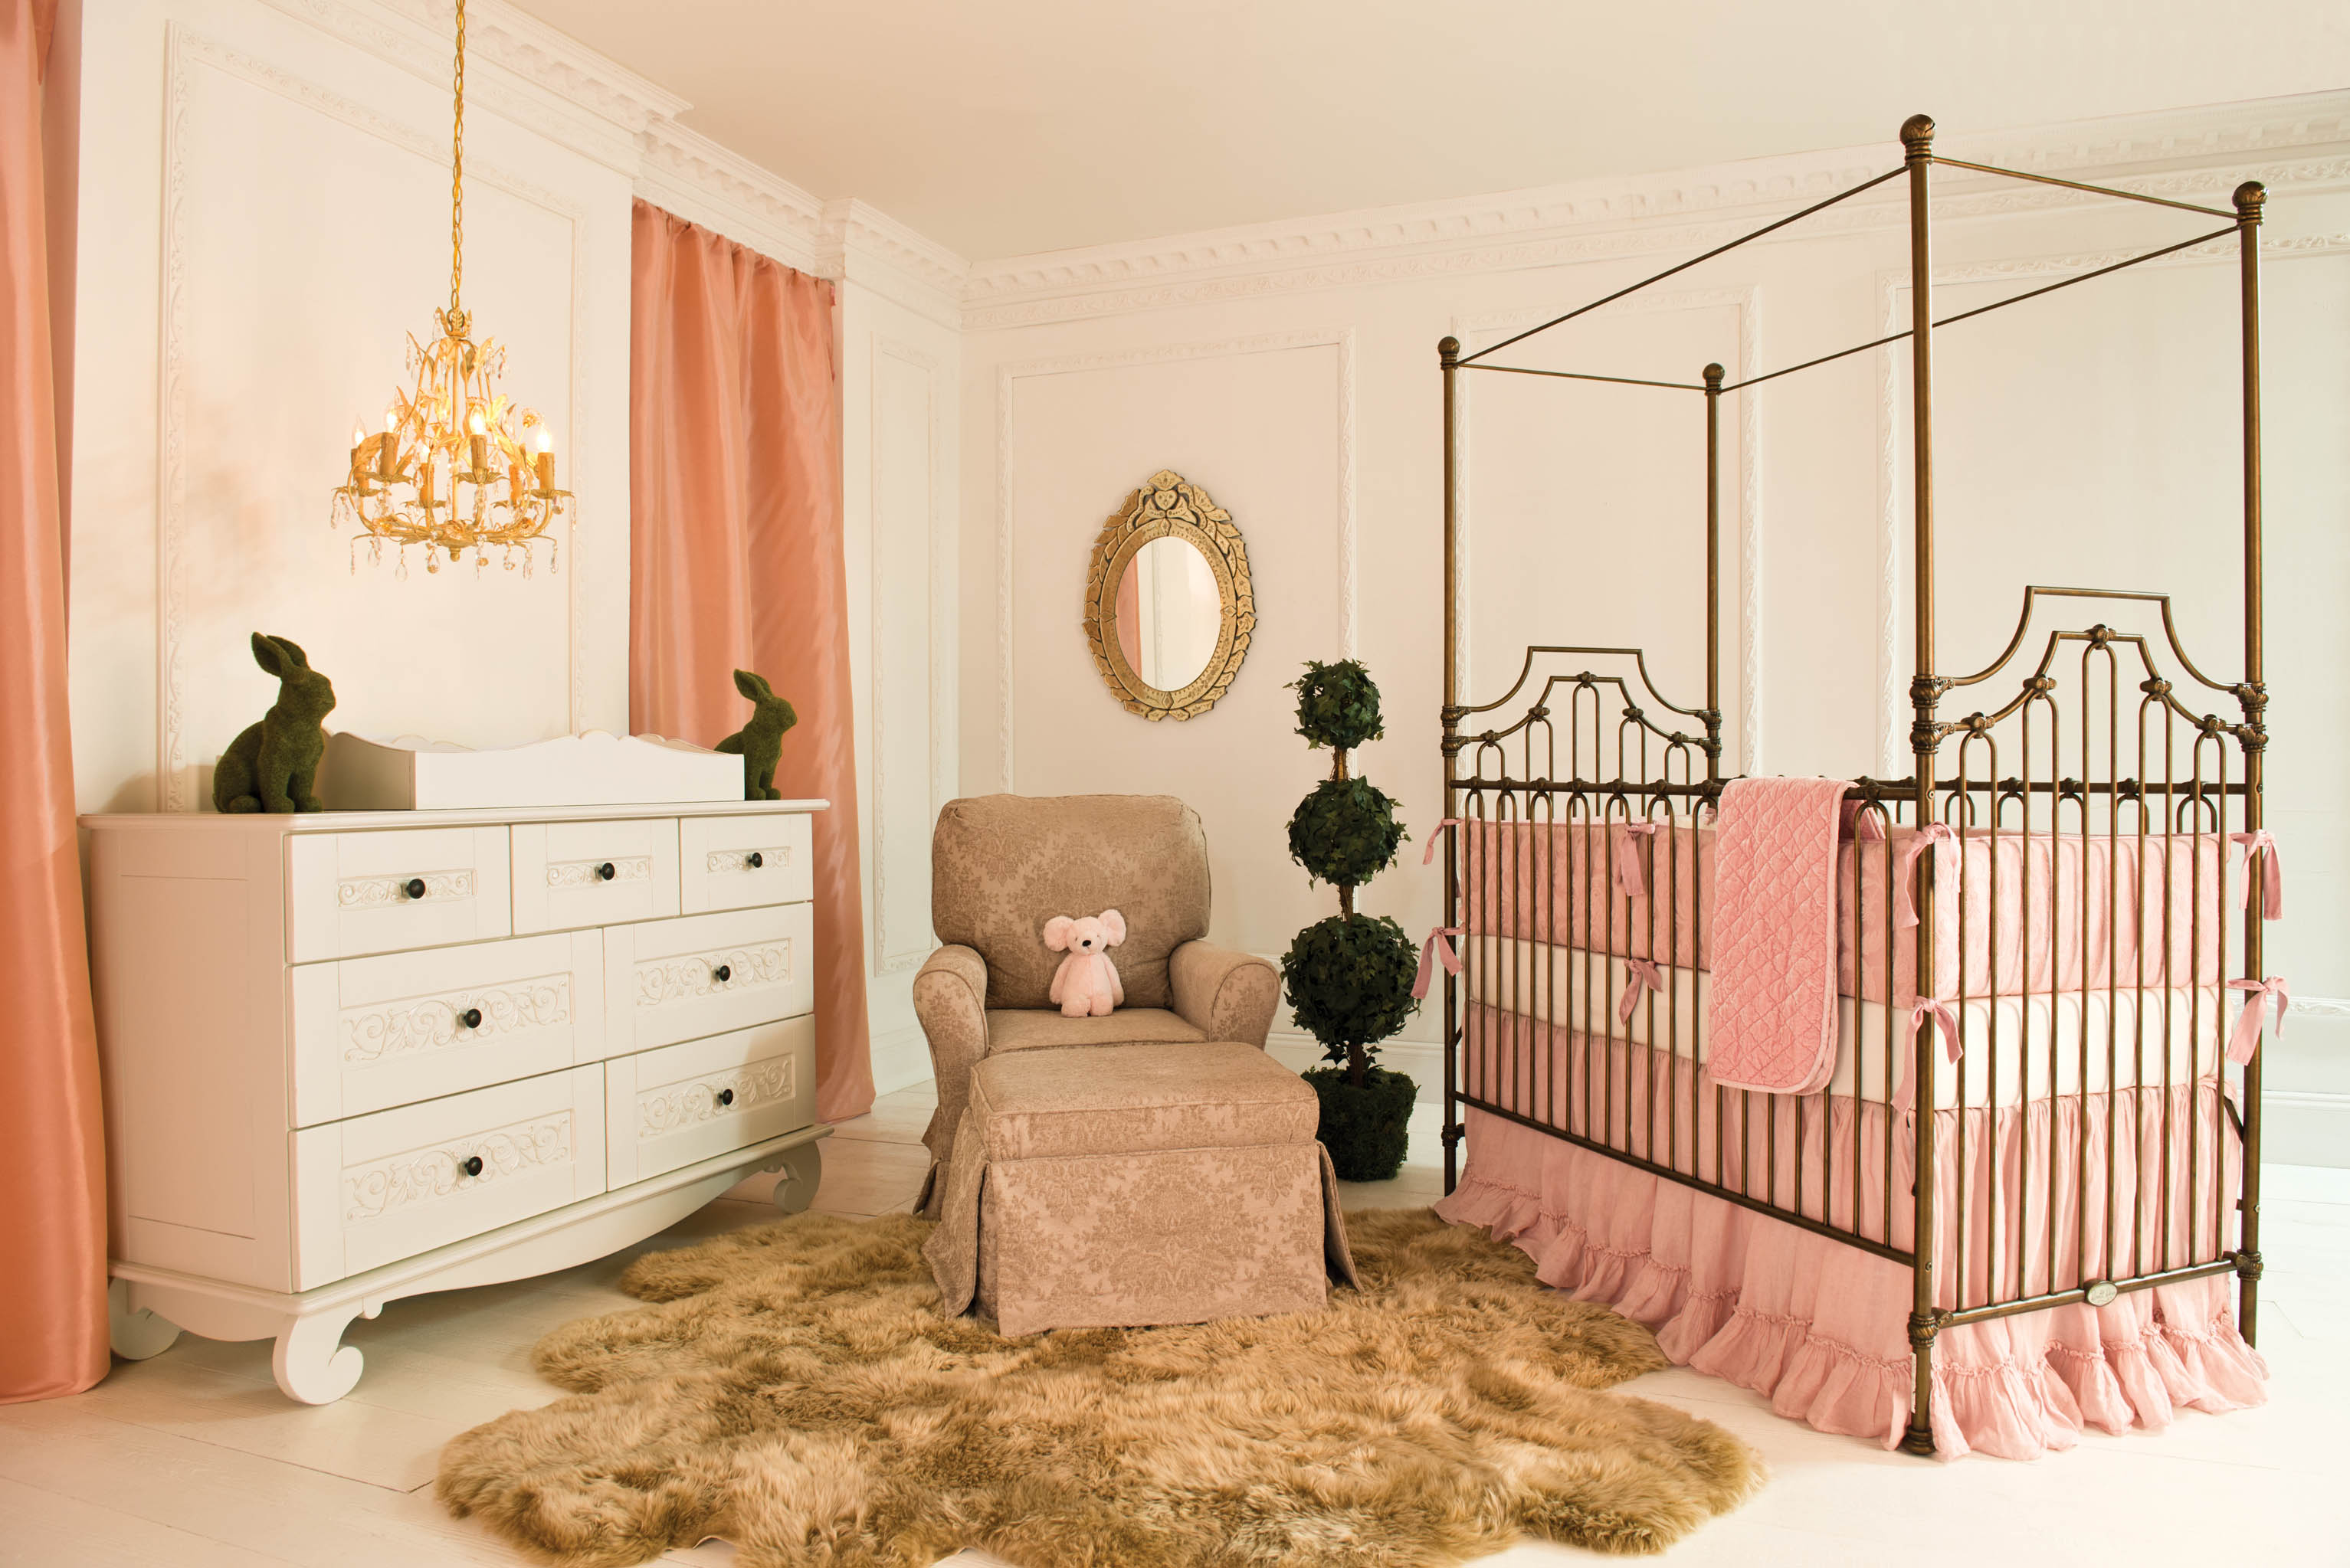 todays toddler beautiful best s rated diaper cribs turns rugged is drawer fosterboyspizza most bed a part full me constructed with convertible into little tables on impressive multipurpose ideas today and plus crib dream of size changing dresser baby